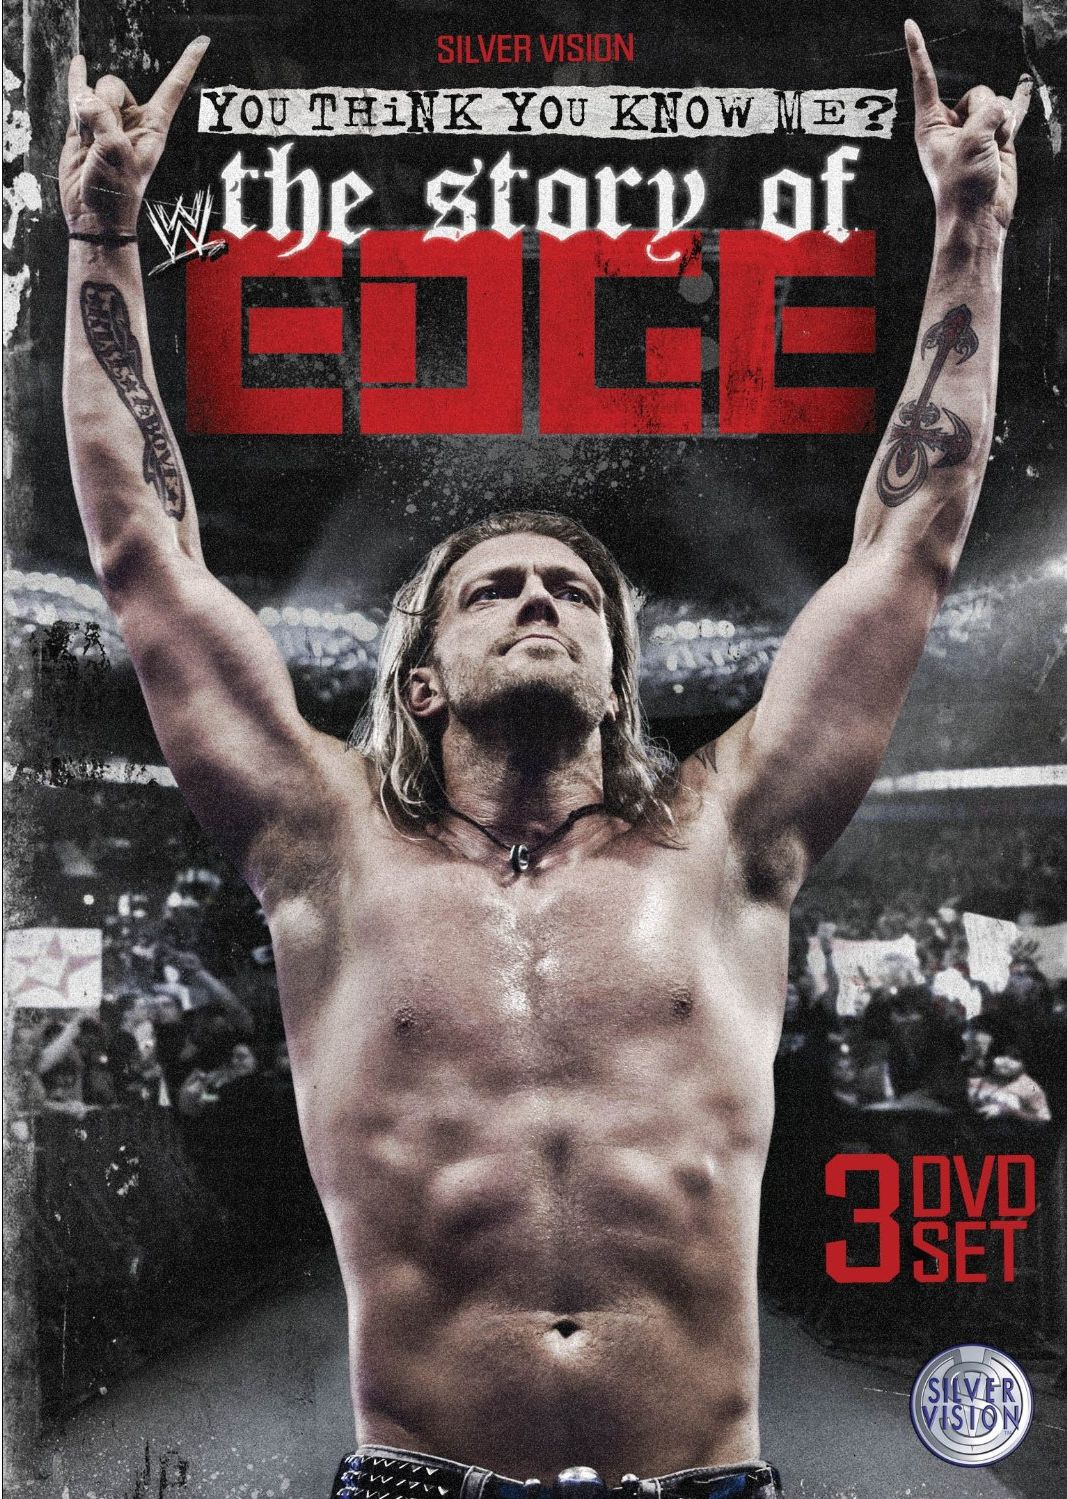 Edge: You Think You Know Me